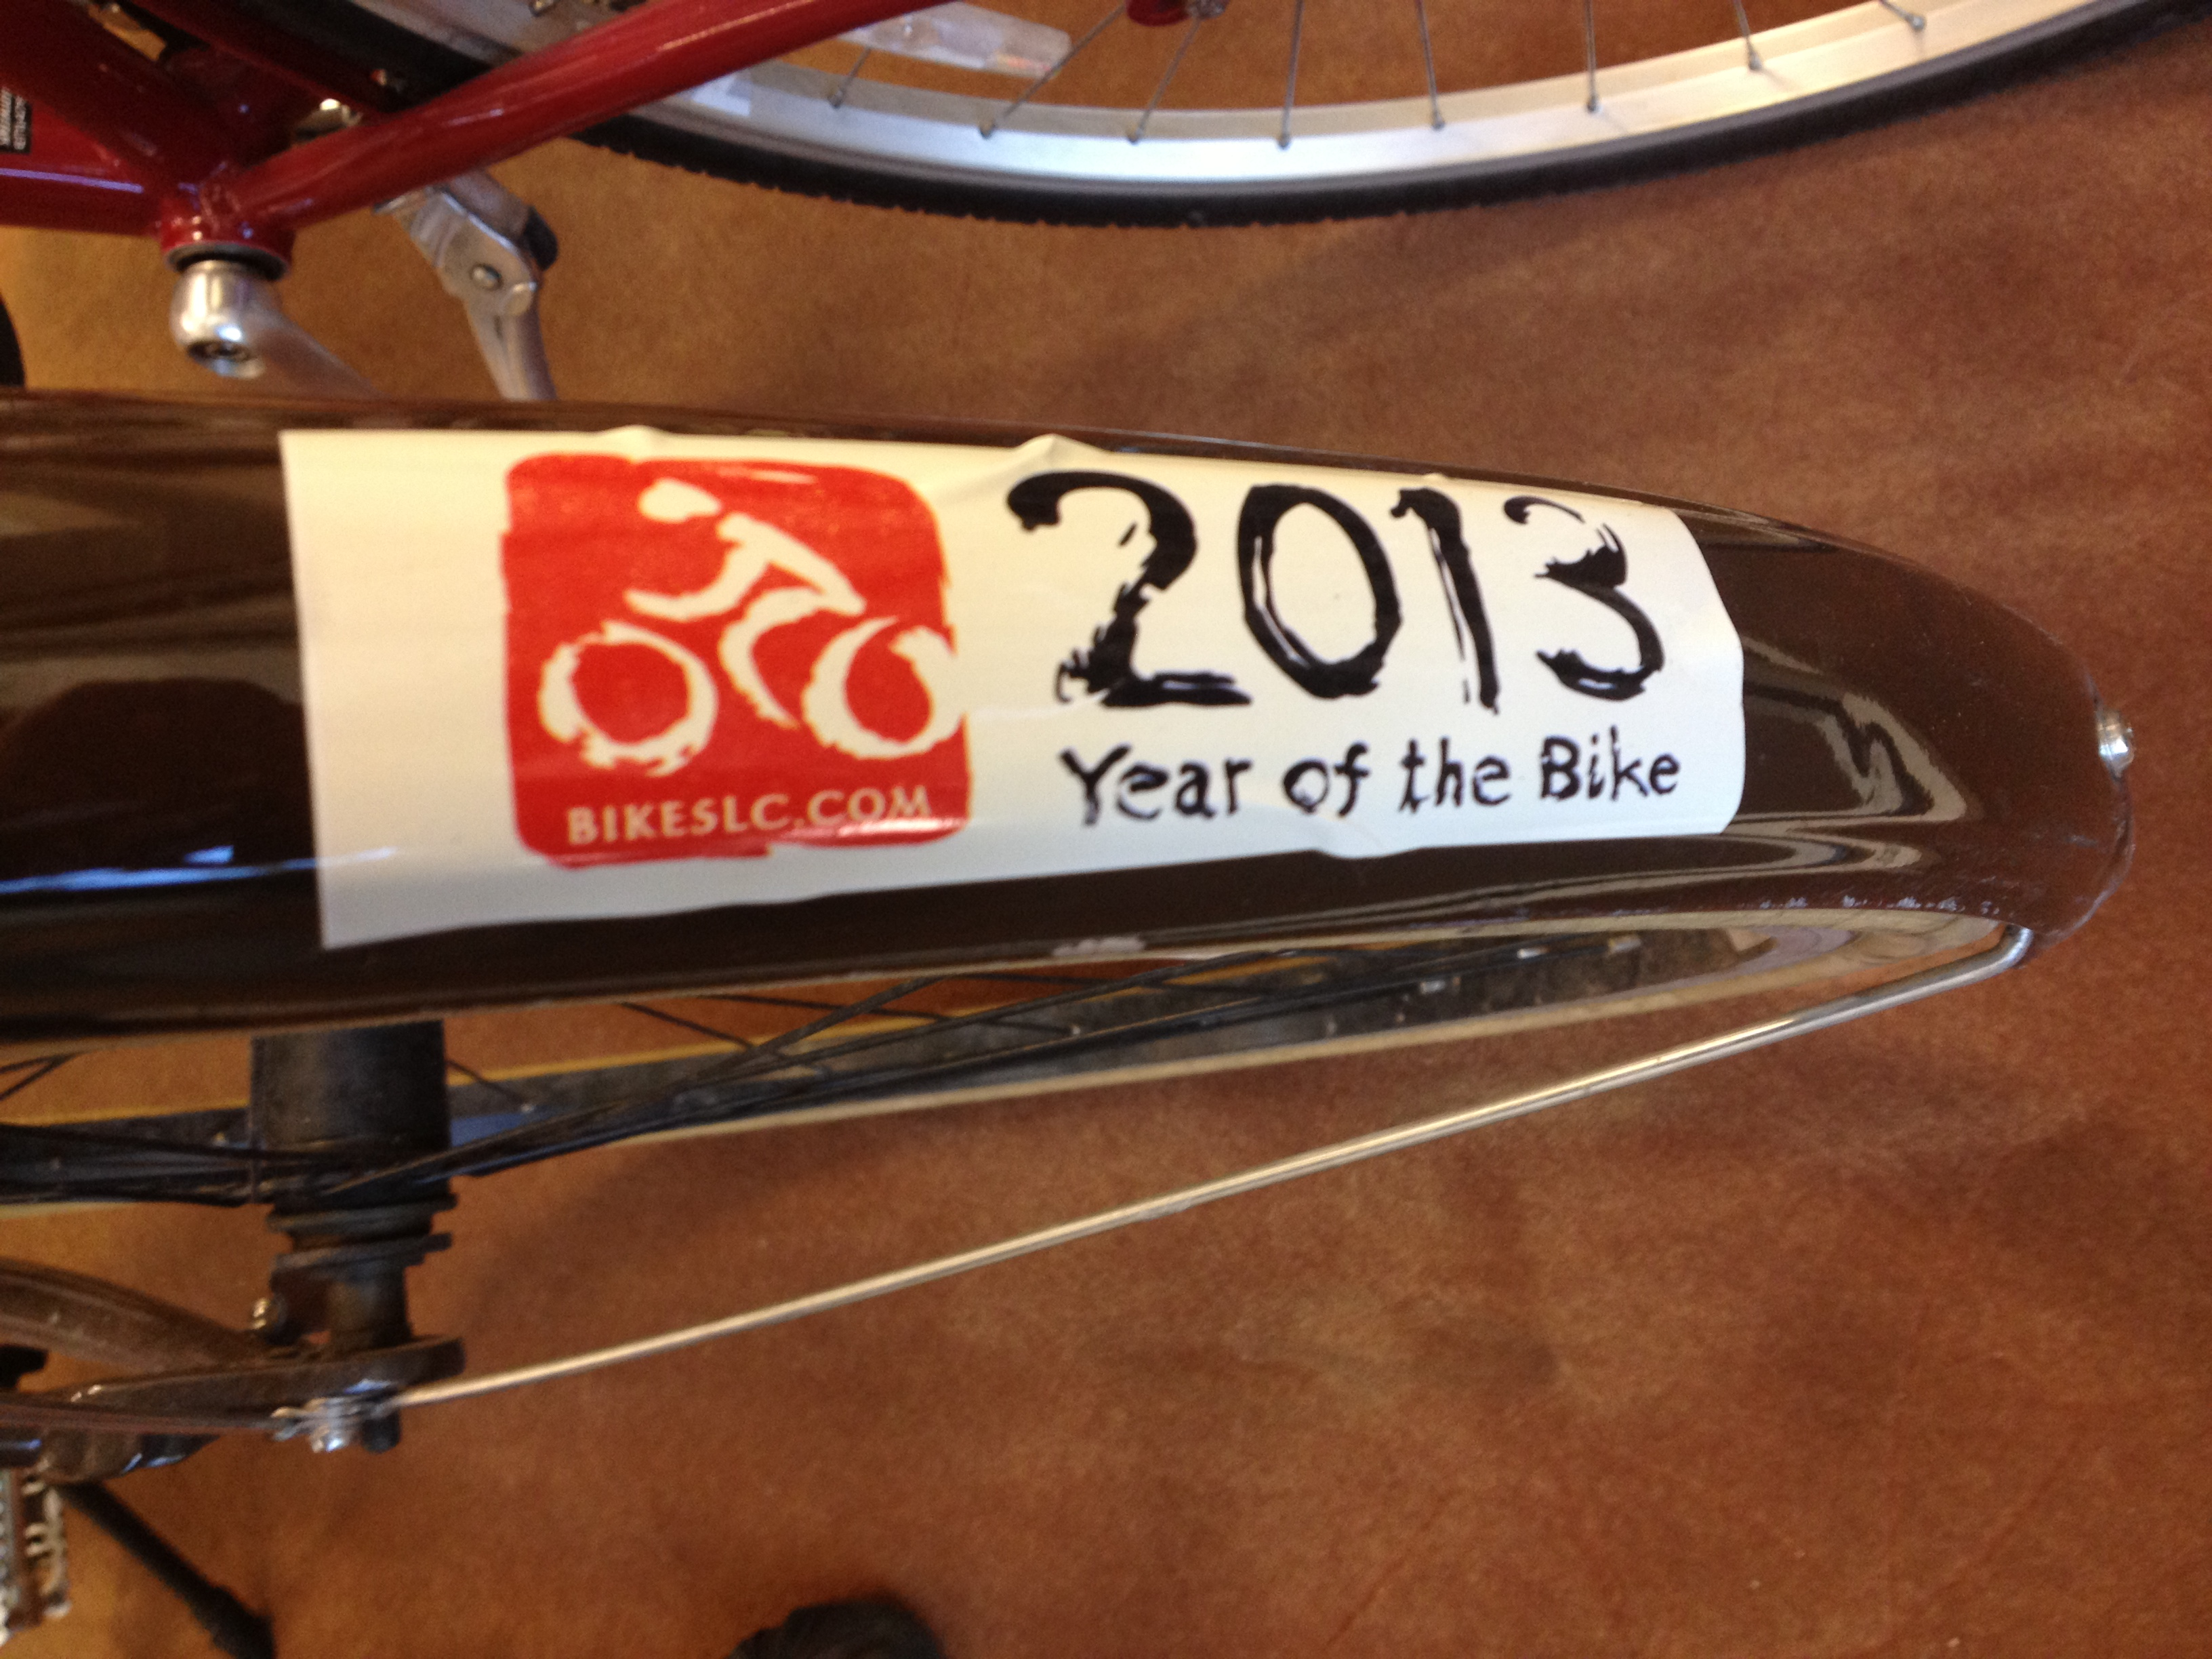 Year of the Bike